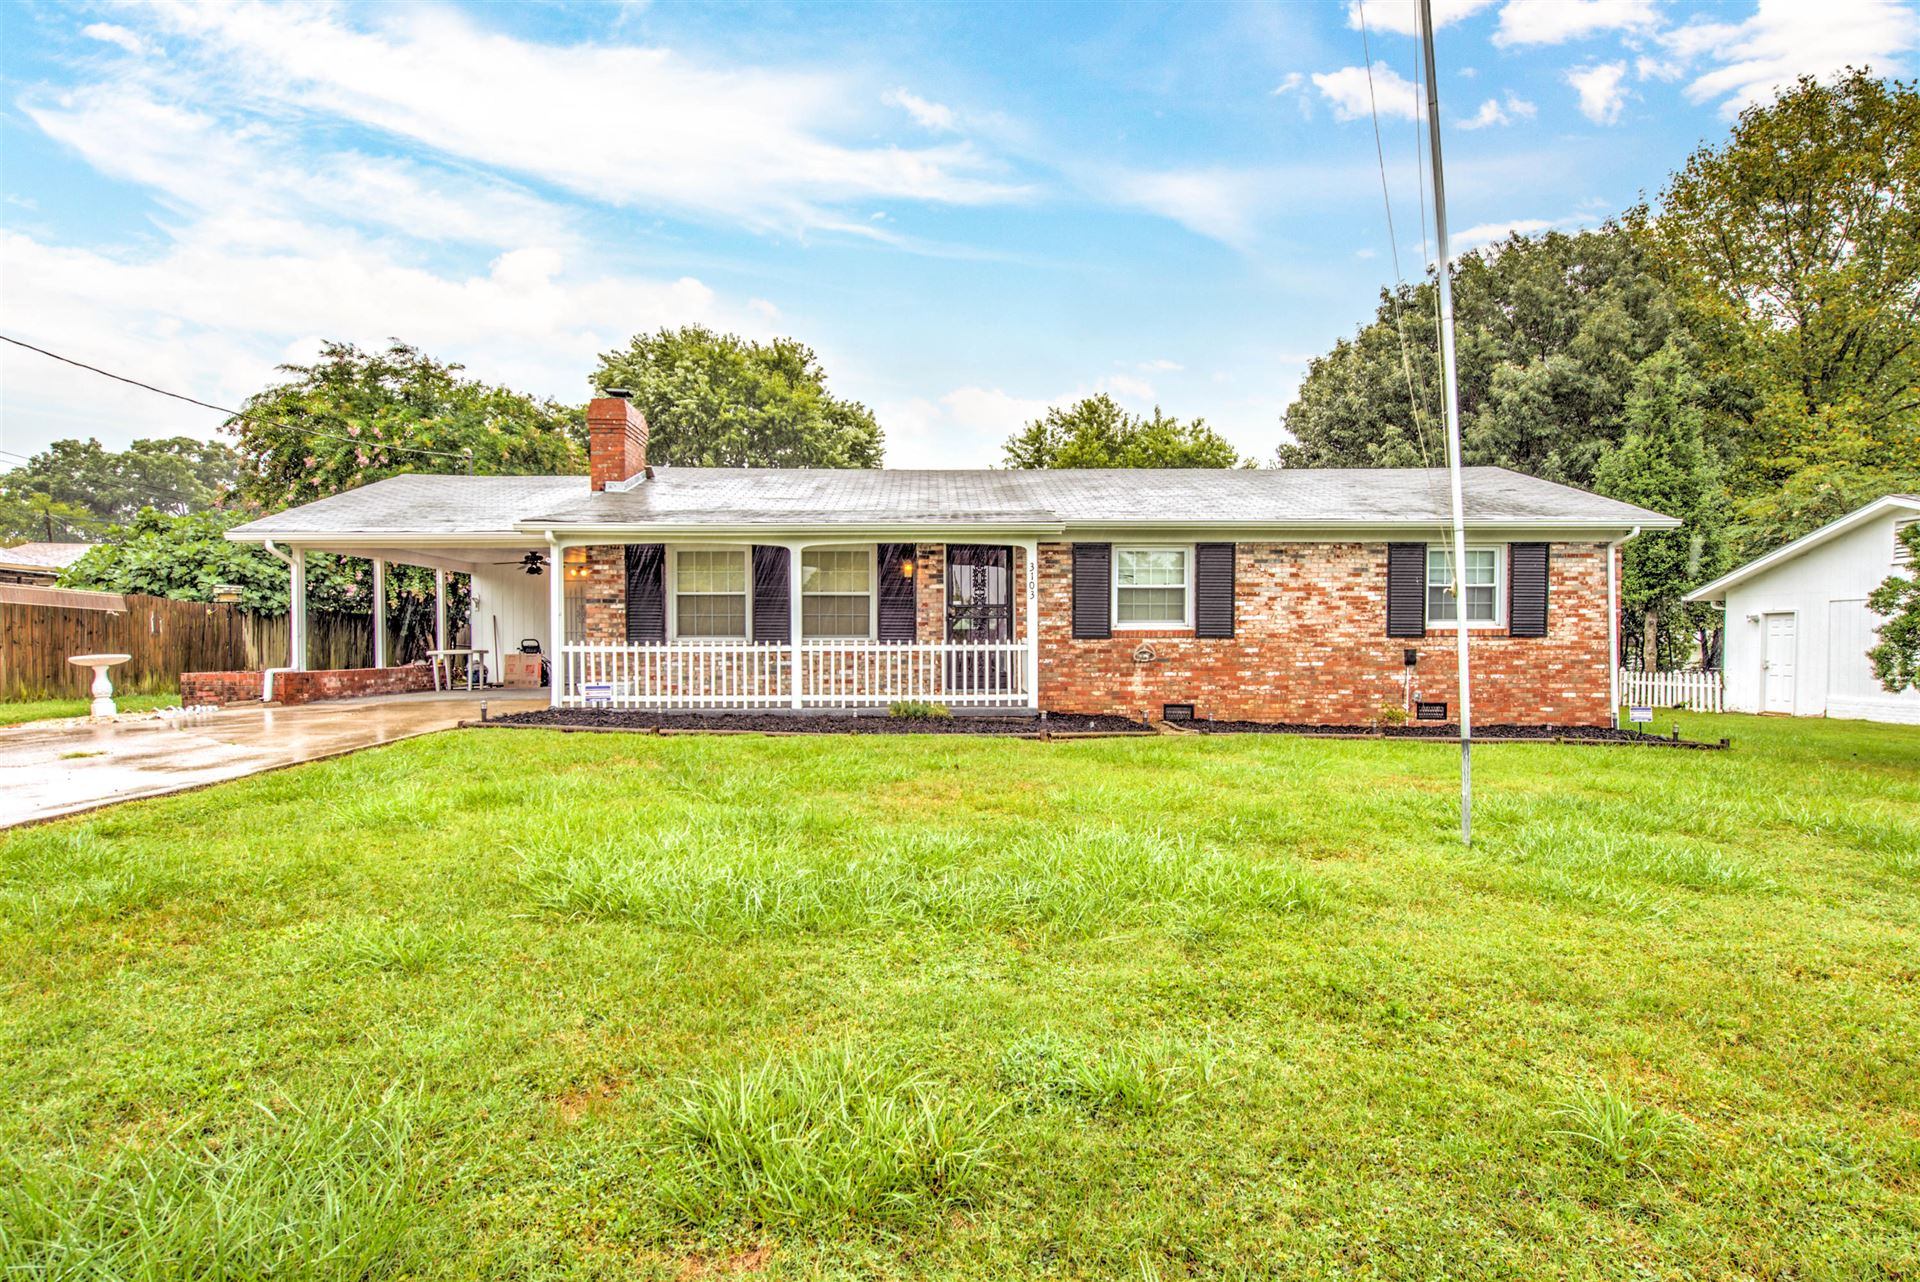 Photo of 3103 NW Sandalwood Rd, Knoxville, TN 37921 (MLS # 1164771)